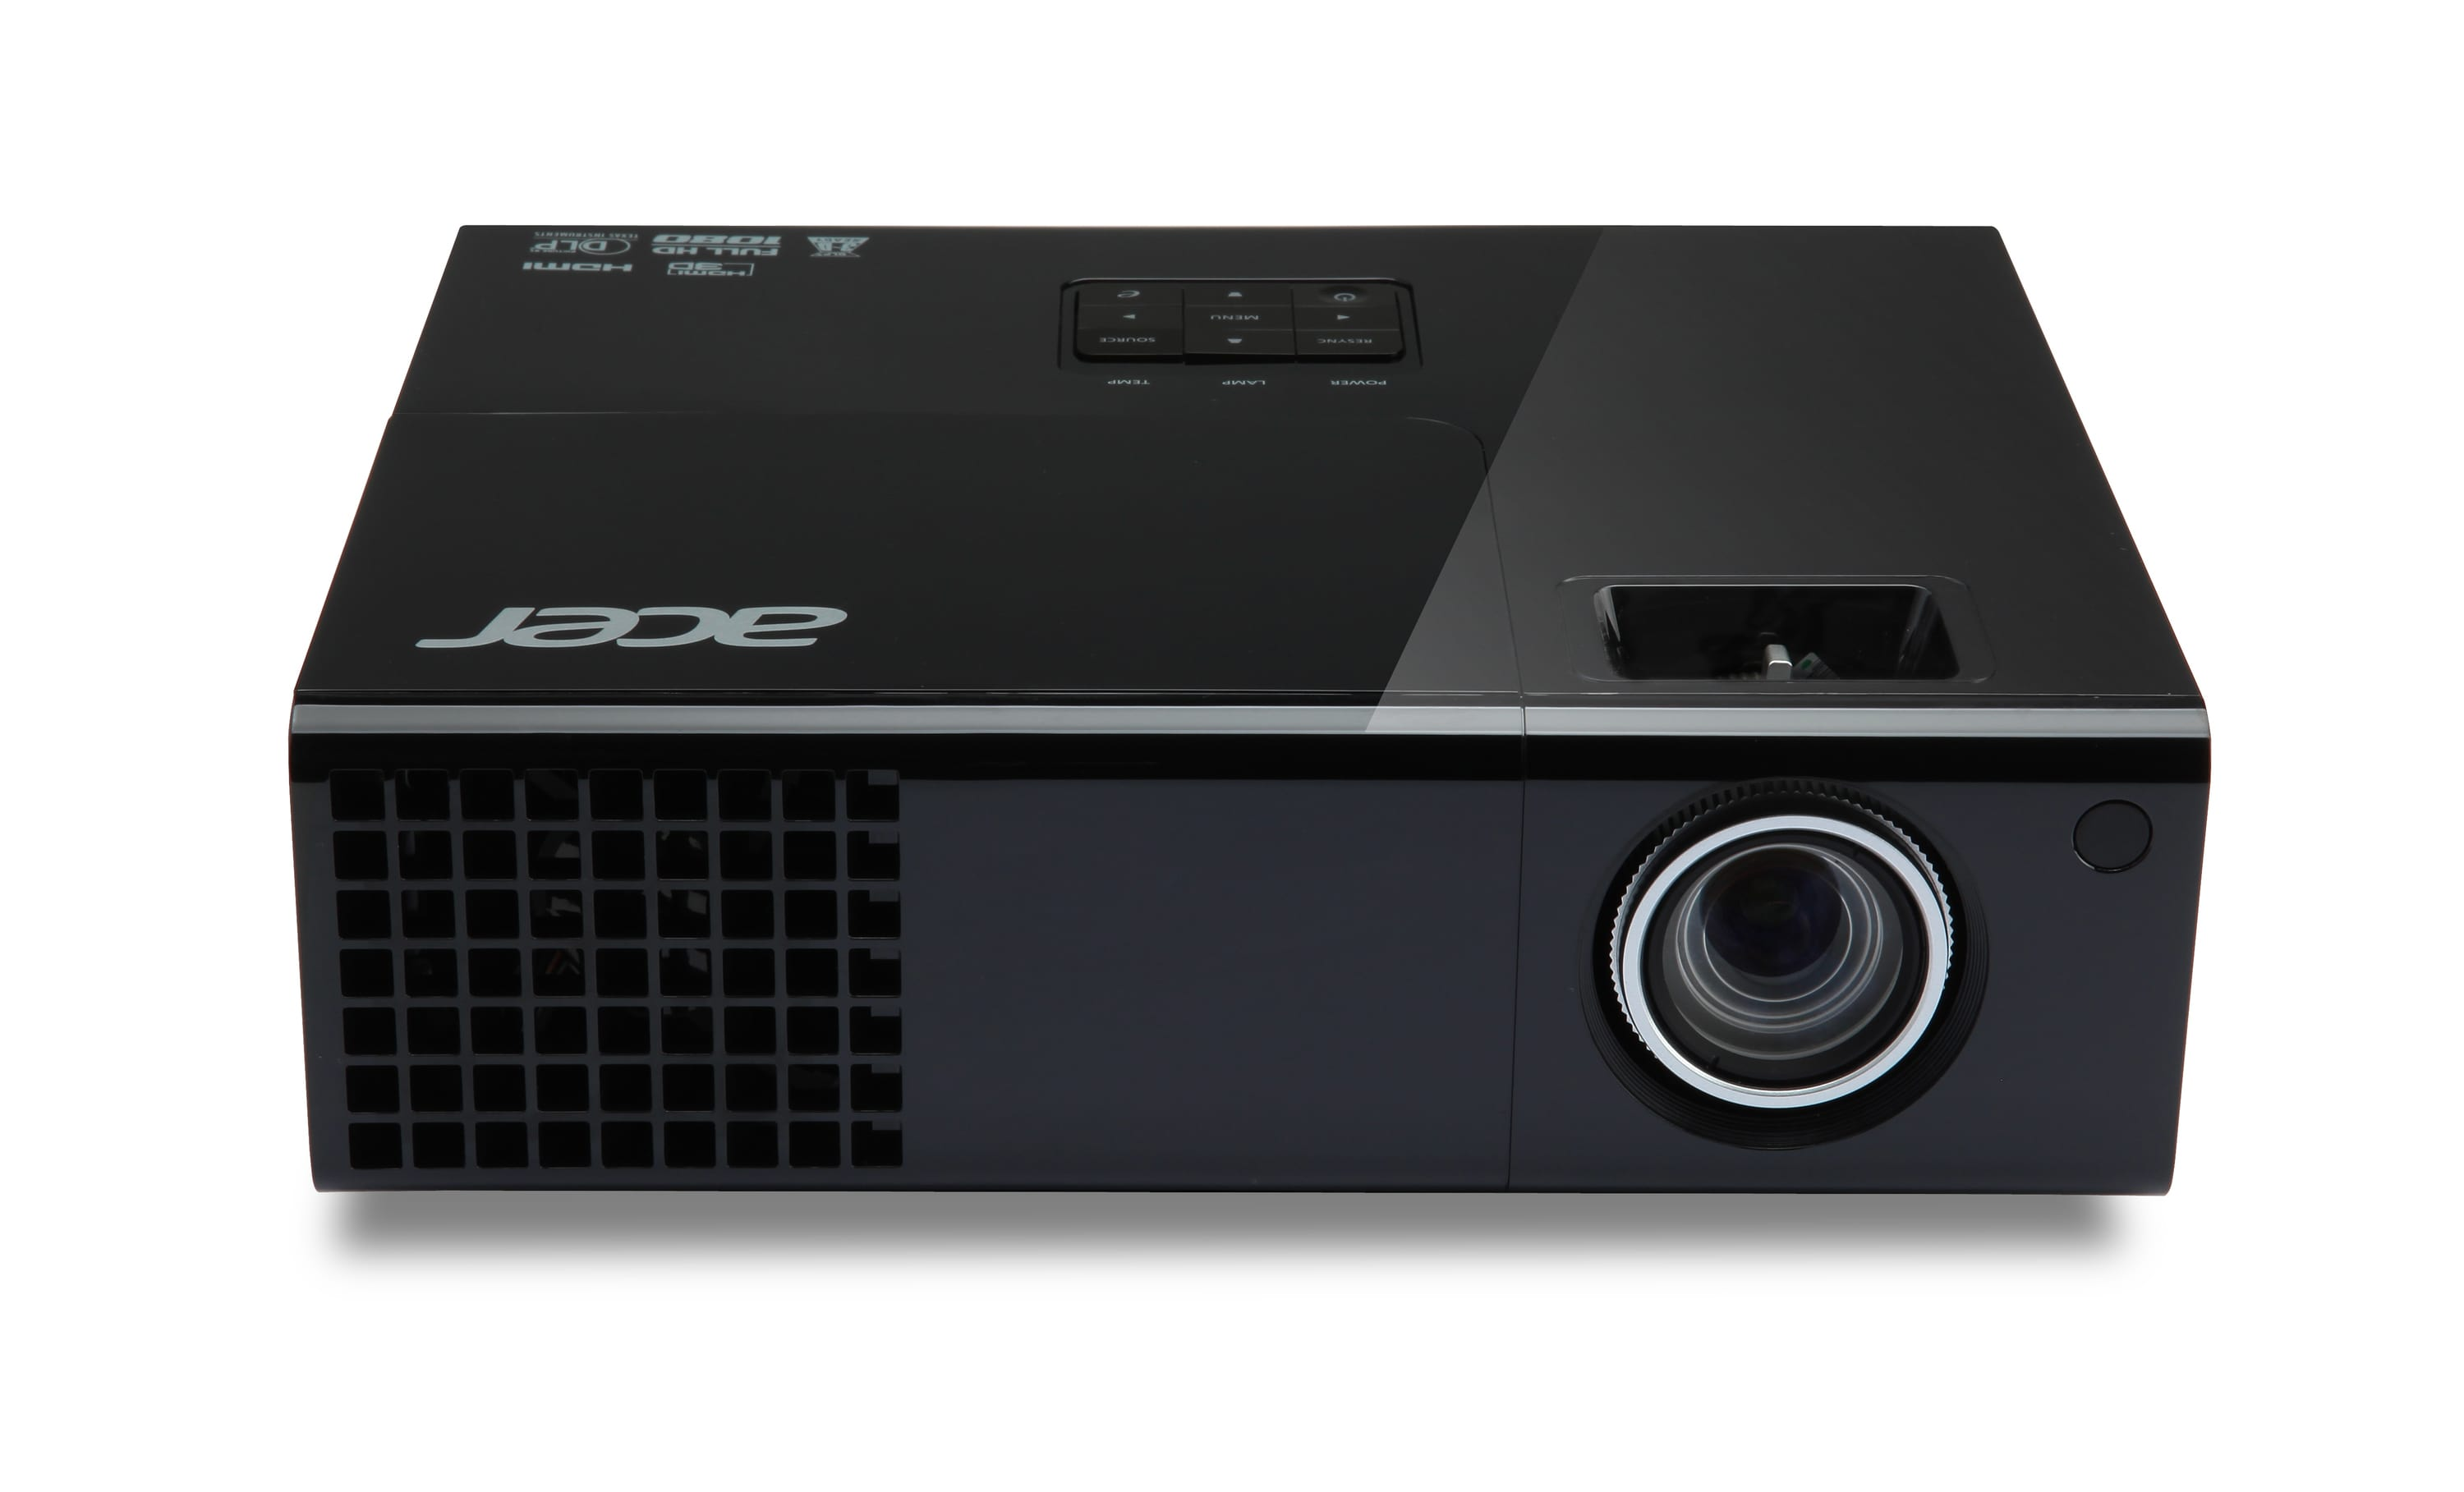 Acer Value P1500 Beamer 3000 ANSi Lumen 1920 x 1080 Full-HD für 599,00 Euro